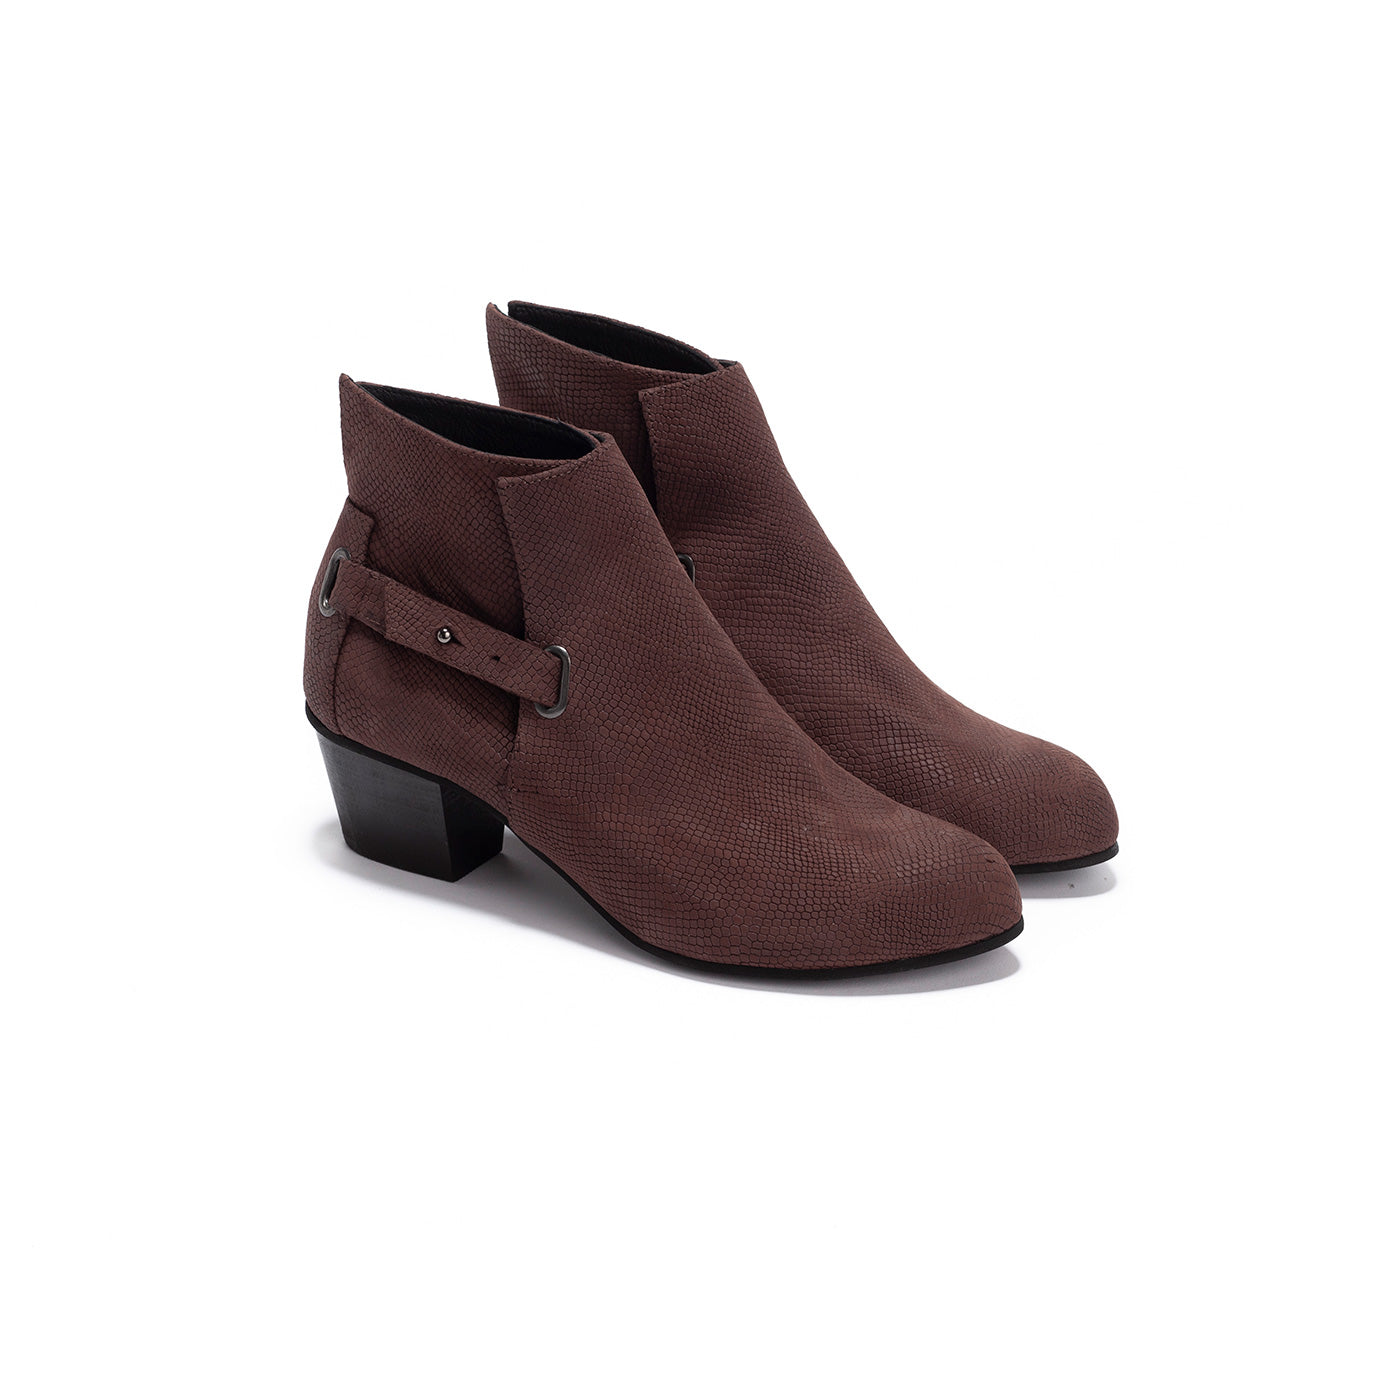 Robin - Brown Leather Boots